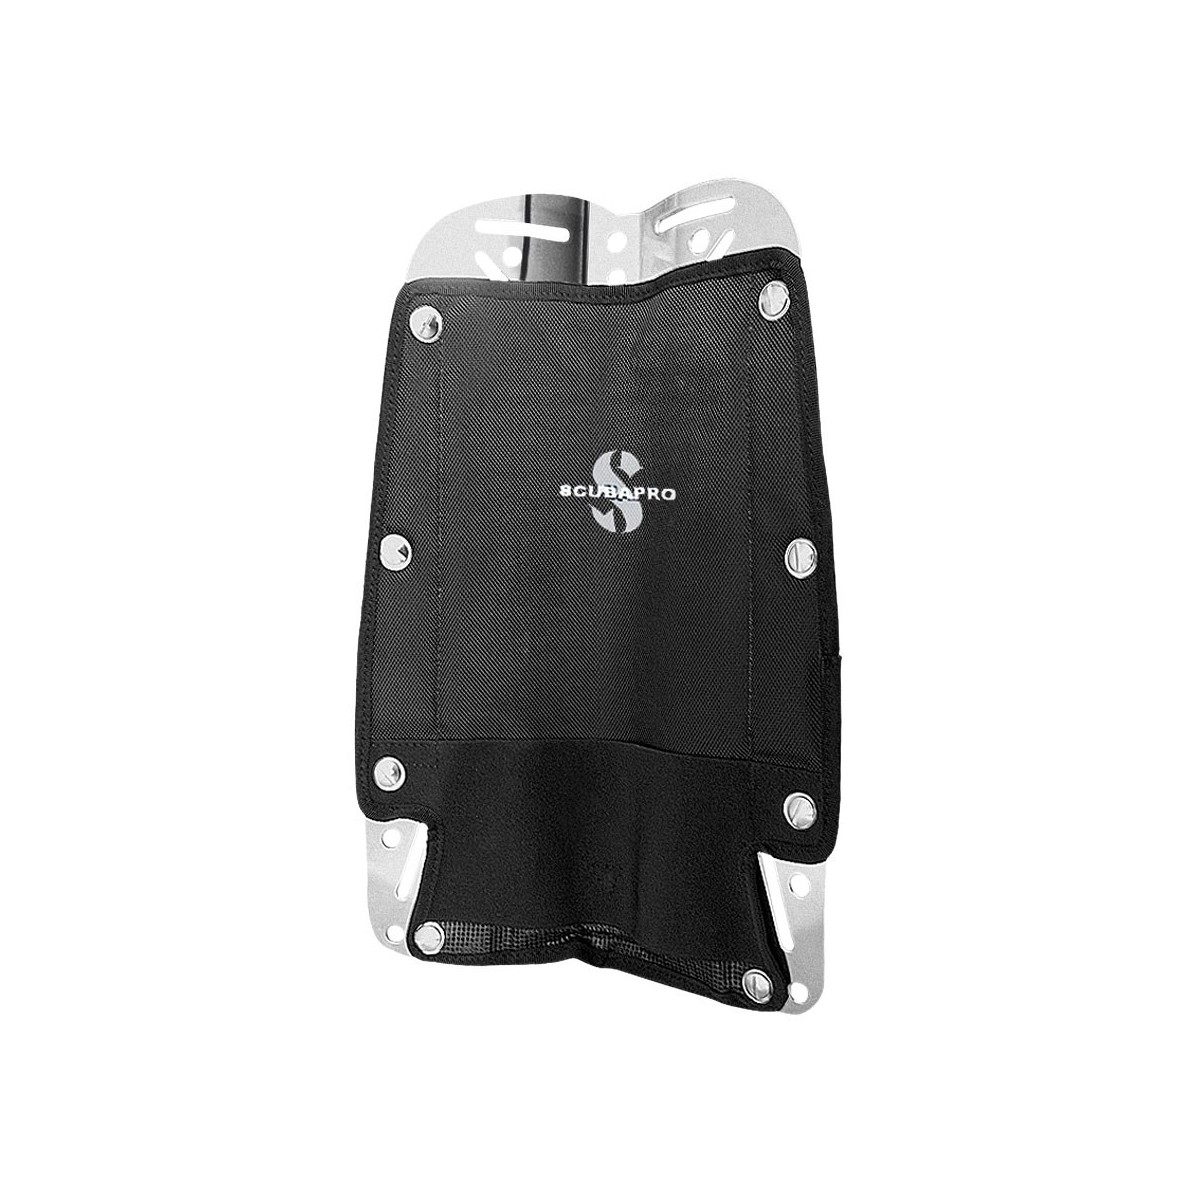 Scubapro Back Plate Storage Pack Technical